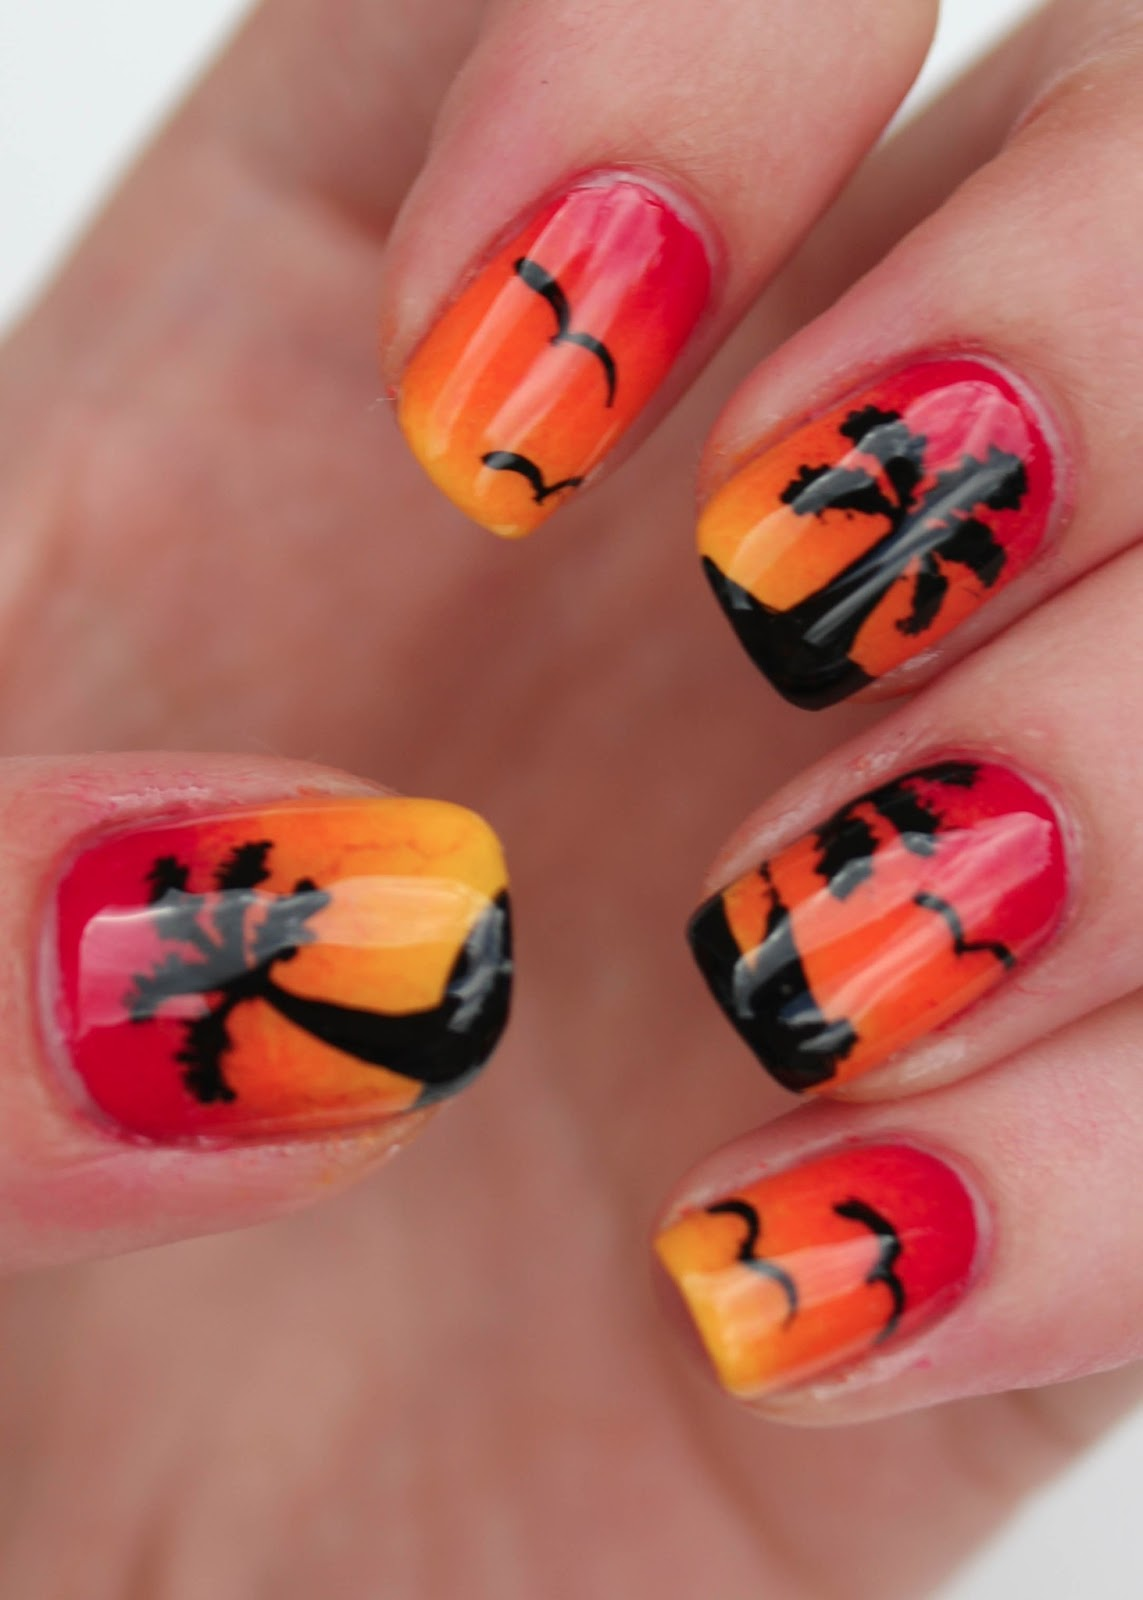 Palm Tree Nail Designs Sunset nail art with palm